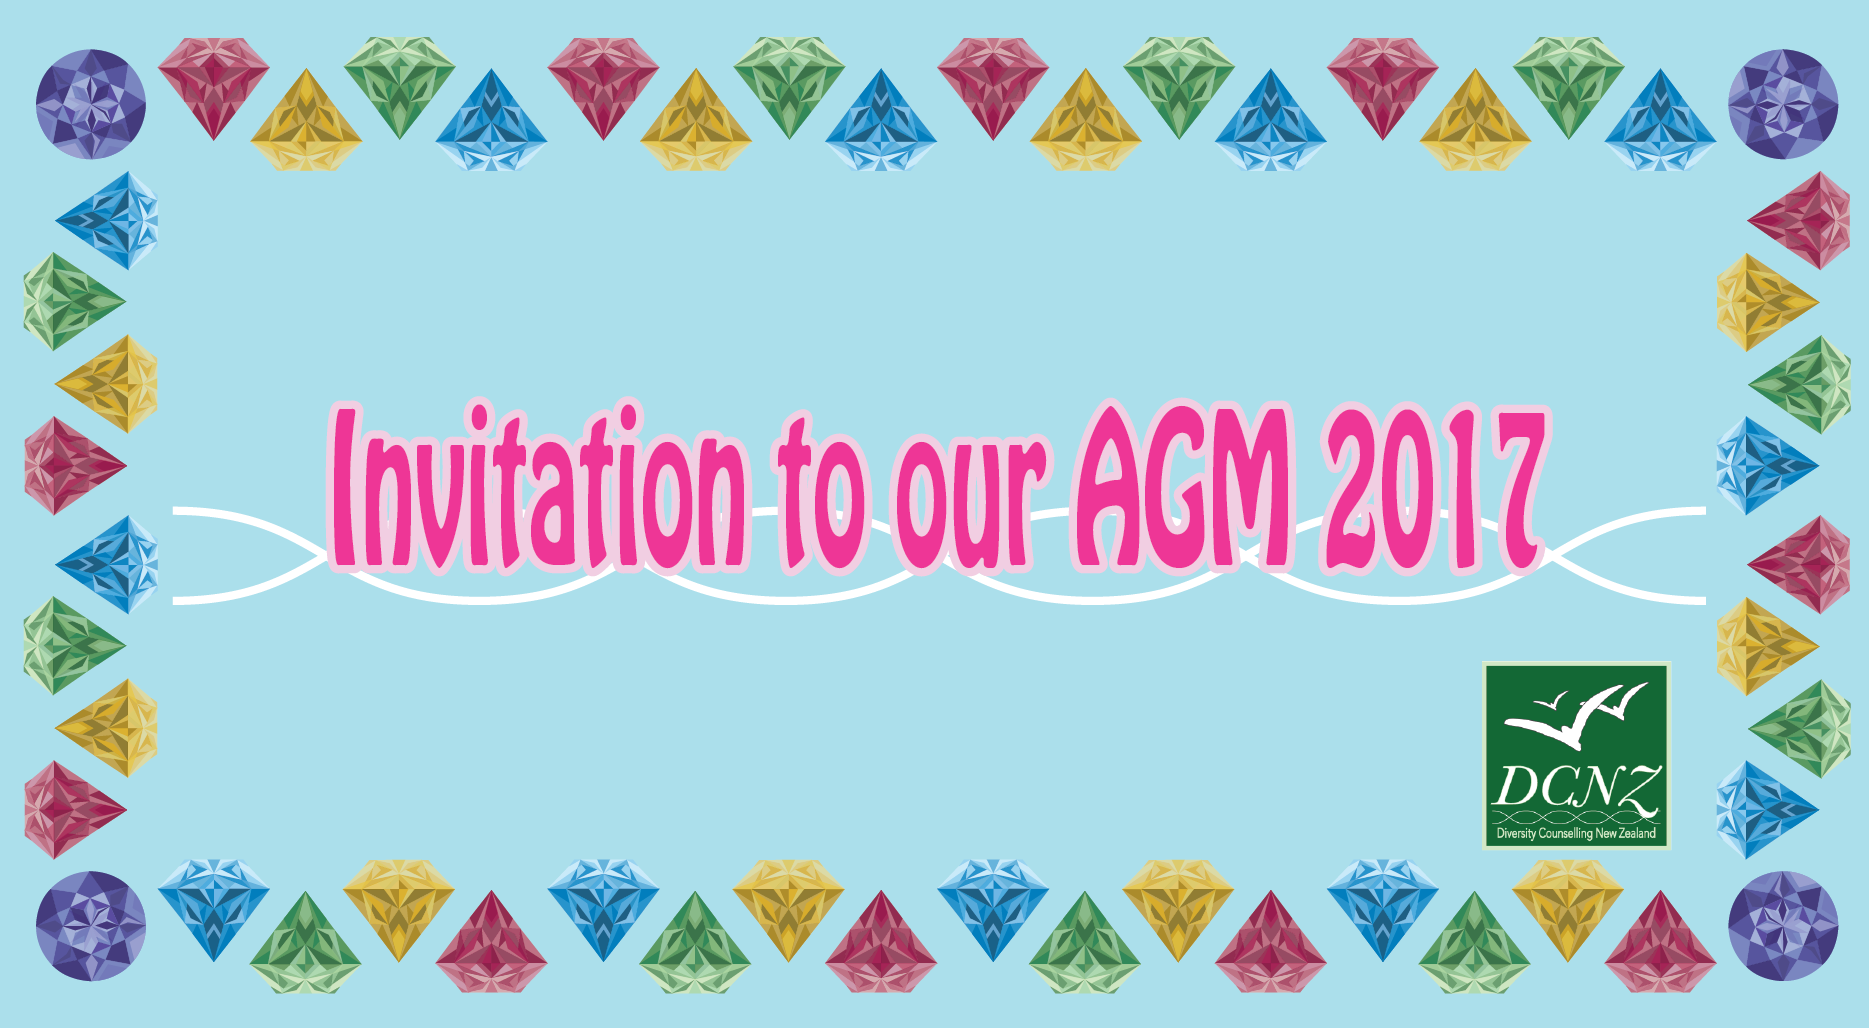 Our AGM 2017 on 8 Nov 2017